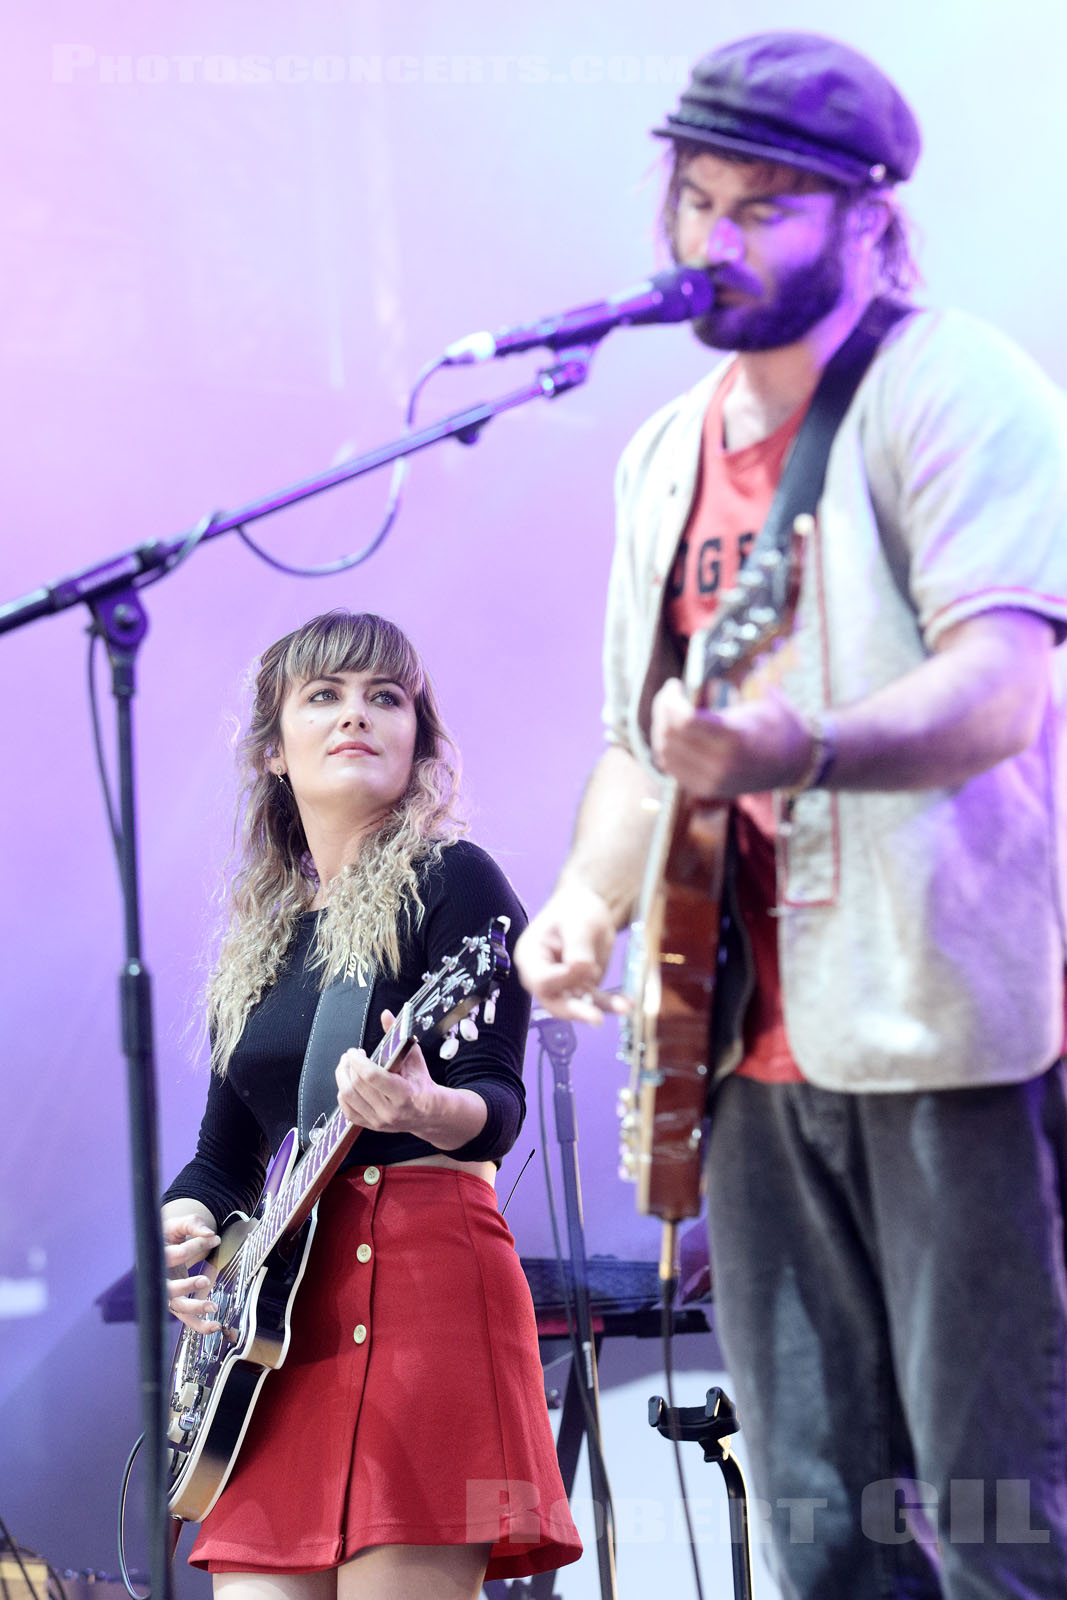 ANGUS AND JULIA STONE - 2015-06-26 - PARIS - Hippodrome de Longchamp